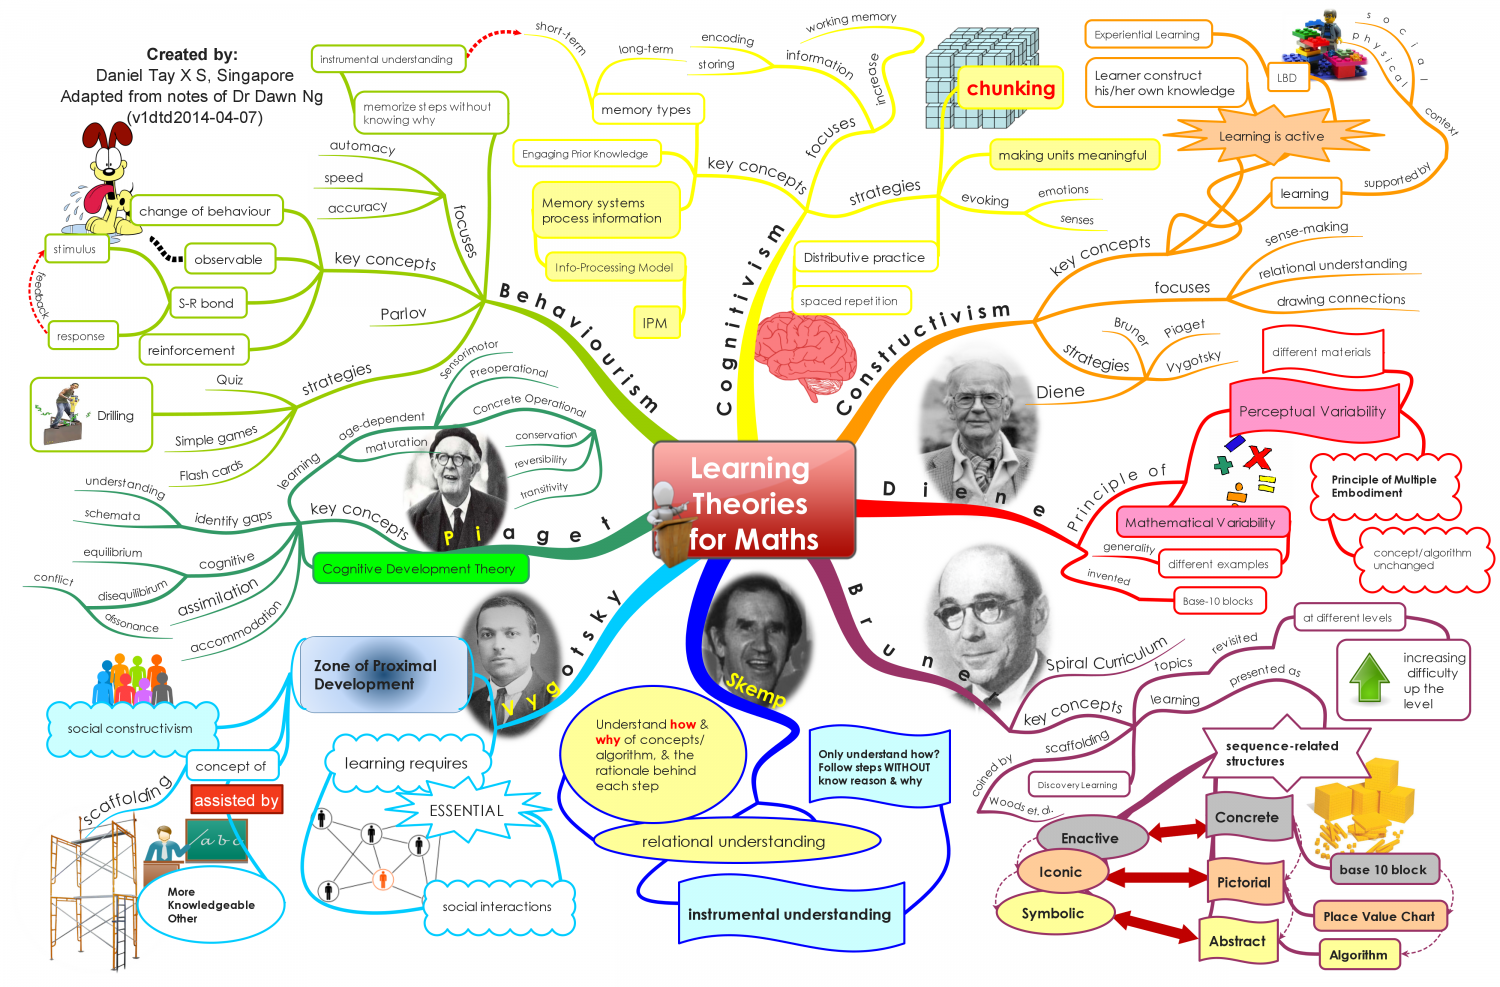 Learning Theories for Maths Infographic